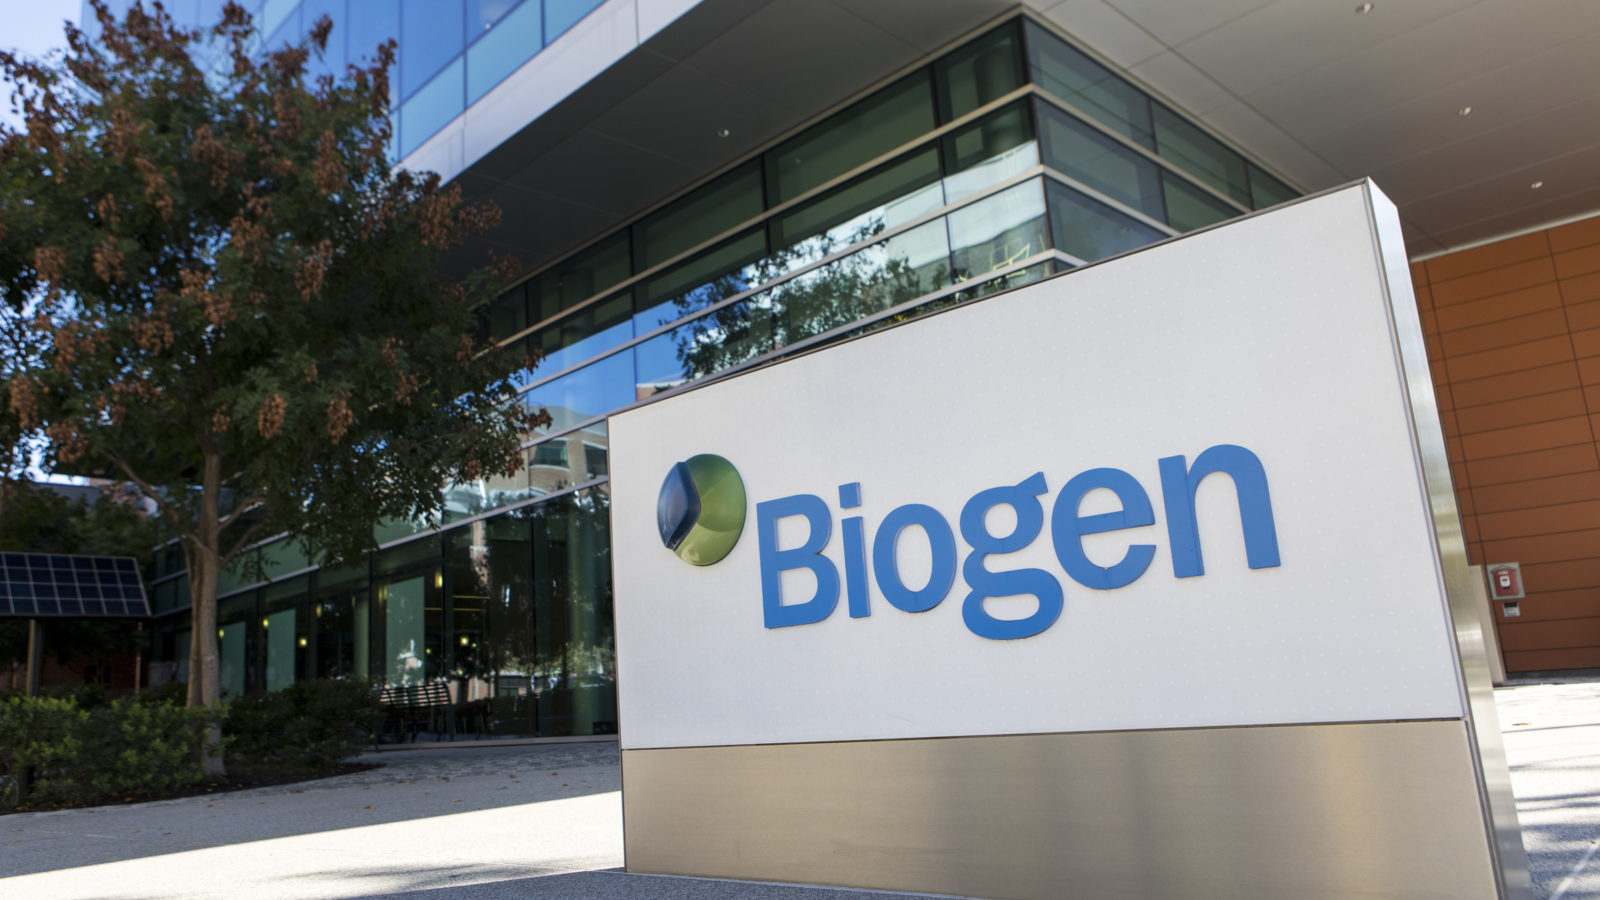 Top Biogen execs were present at meeting where attendees had Covid-19